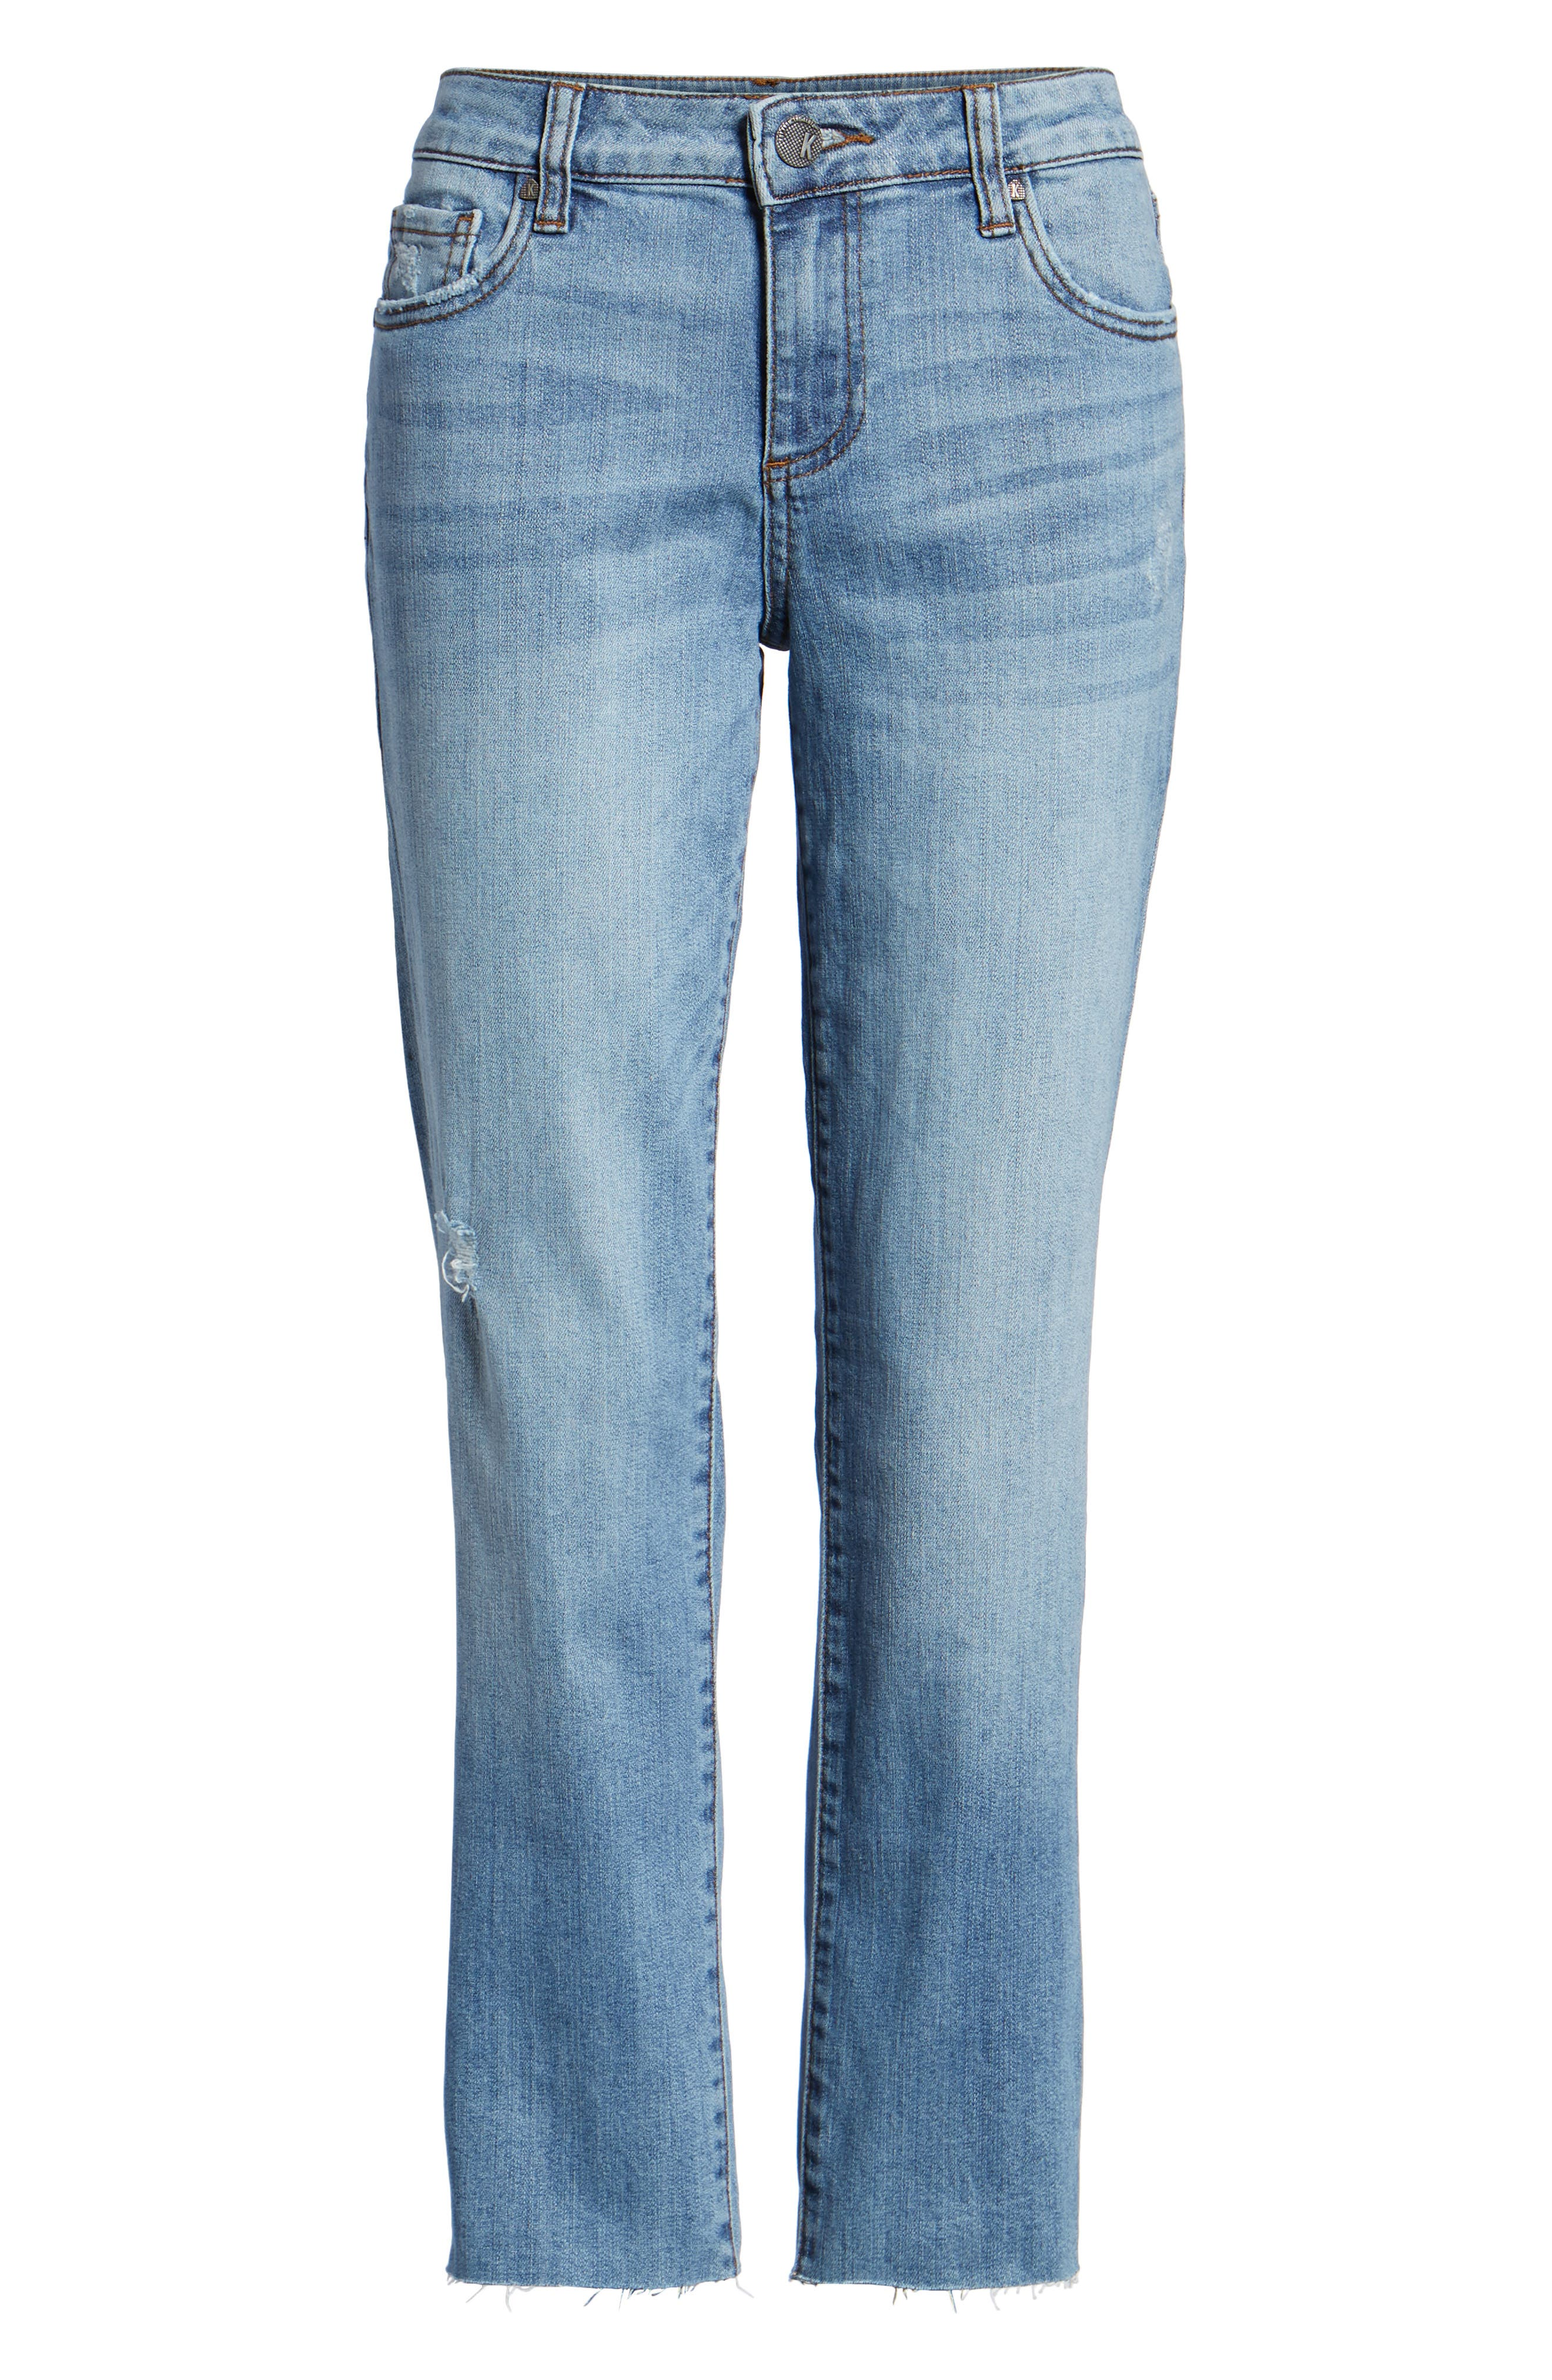 Reese Straight Leg Ankle Jeans,                             Alternate thumbnail 6, color,                             EQUILIBRIUM